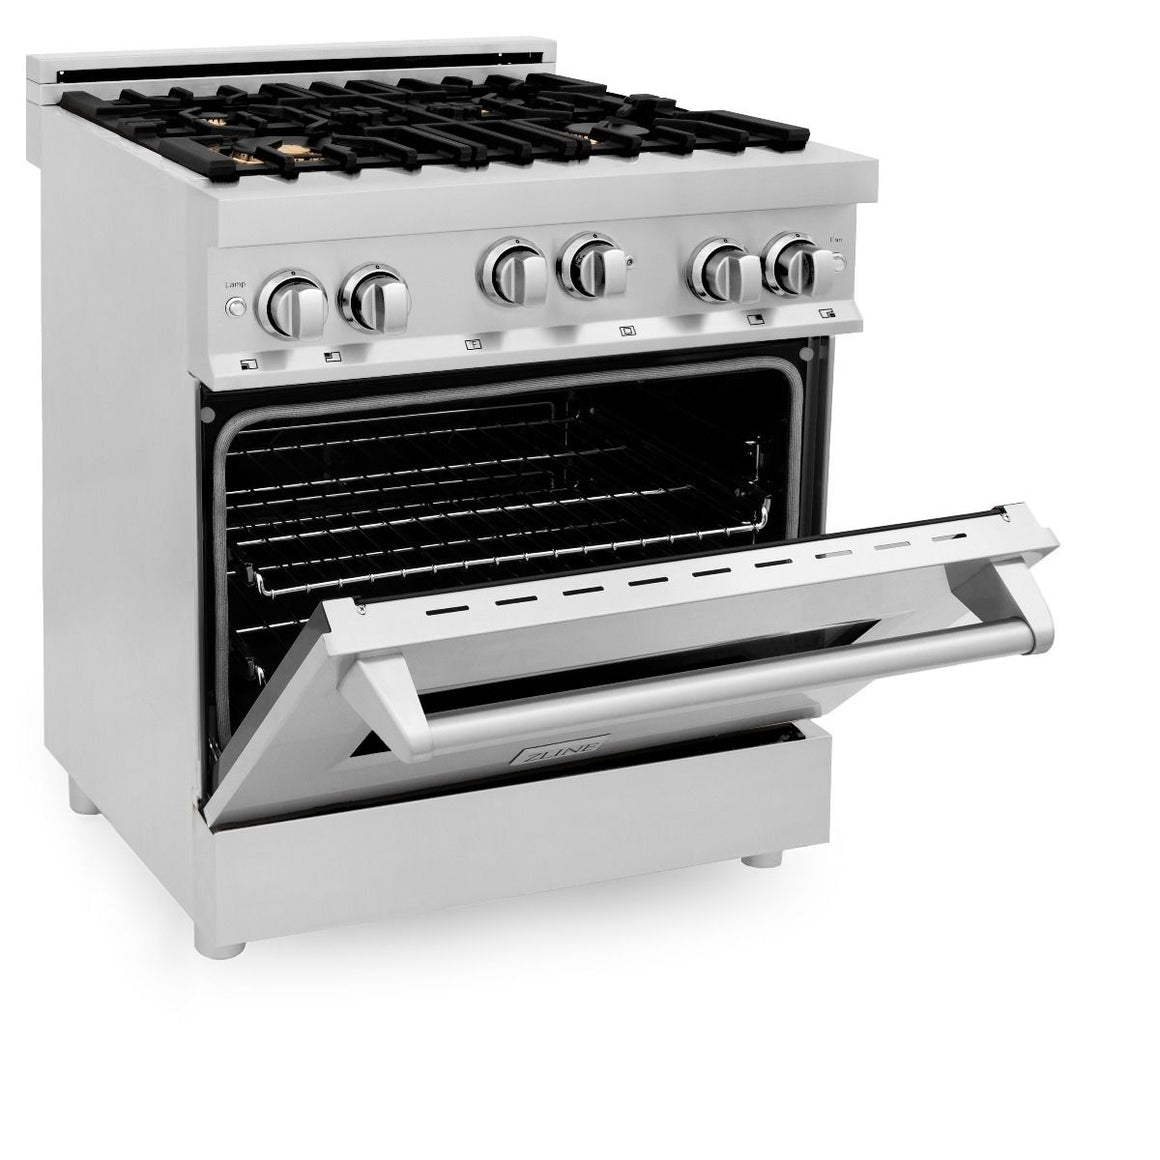 "ZLINE 30"" Gas On Gas Range, Stainless Steel, Brass Burners, RG-BR-30"